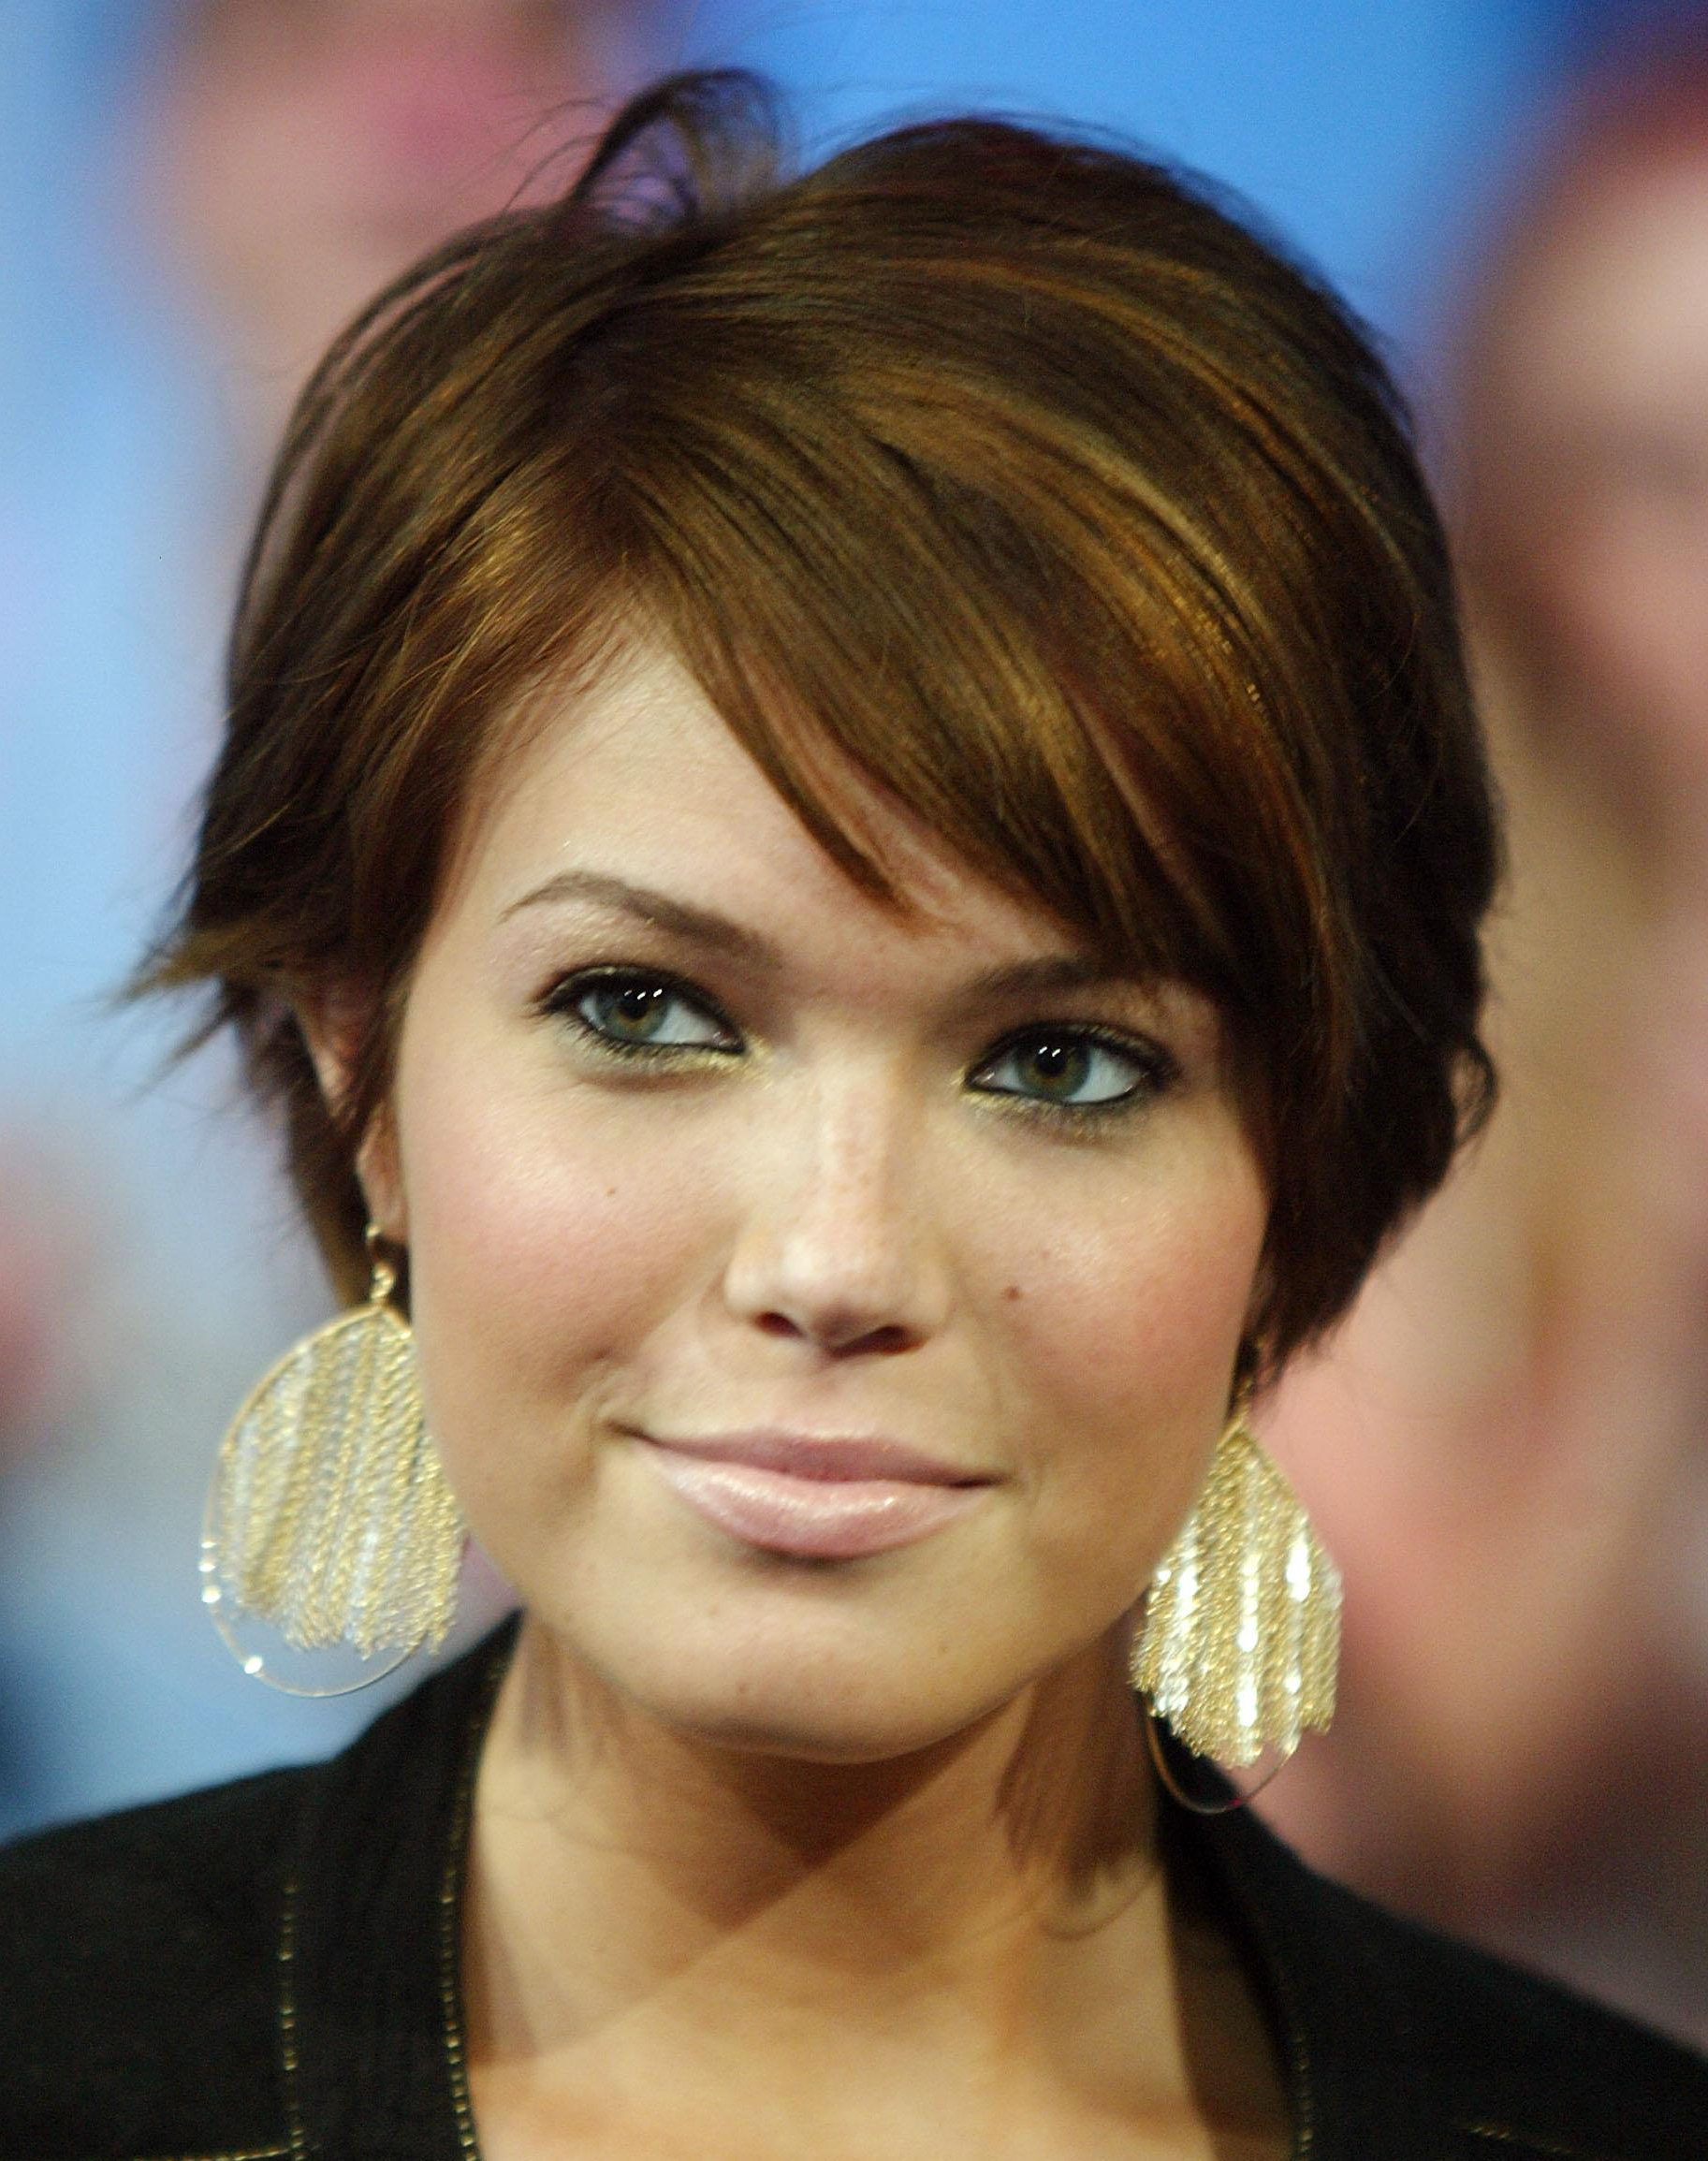 Short Hairstyles: Awesome Simple Short Hairstyles For A Round Face Throughout Simple Short Haircuts For Round Faces (View 16 of 25)